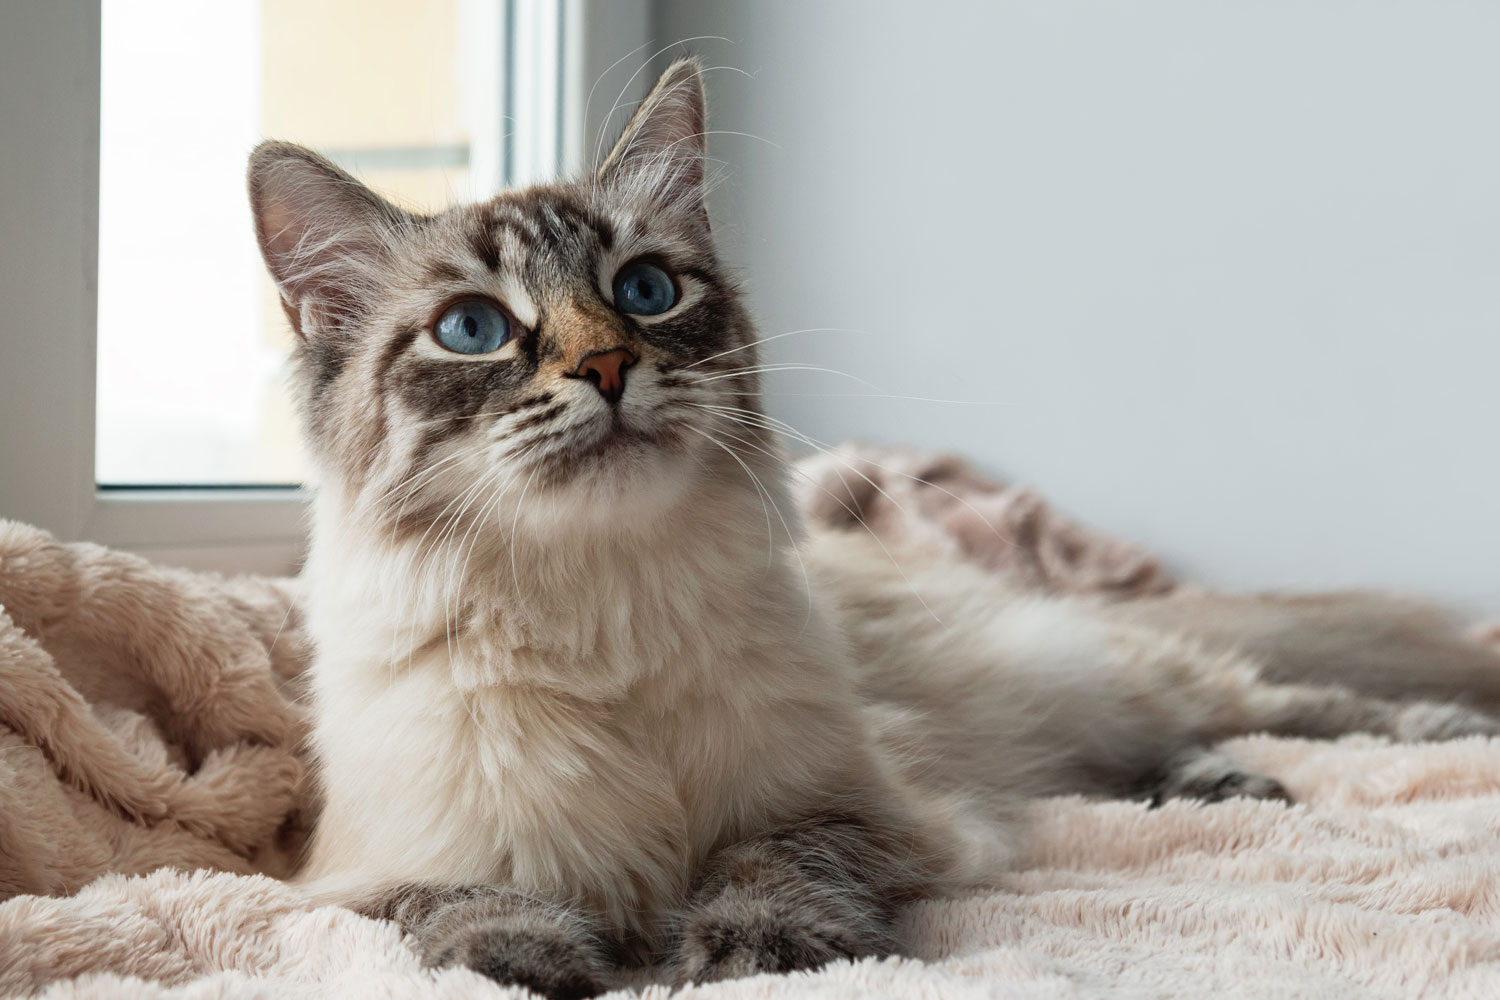 A beautiful Seal lynx point cat lying in bed and starring at something, Lynx Point Siamese Cat Facts And Fun